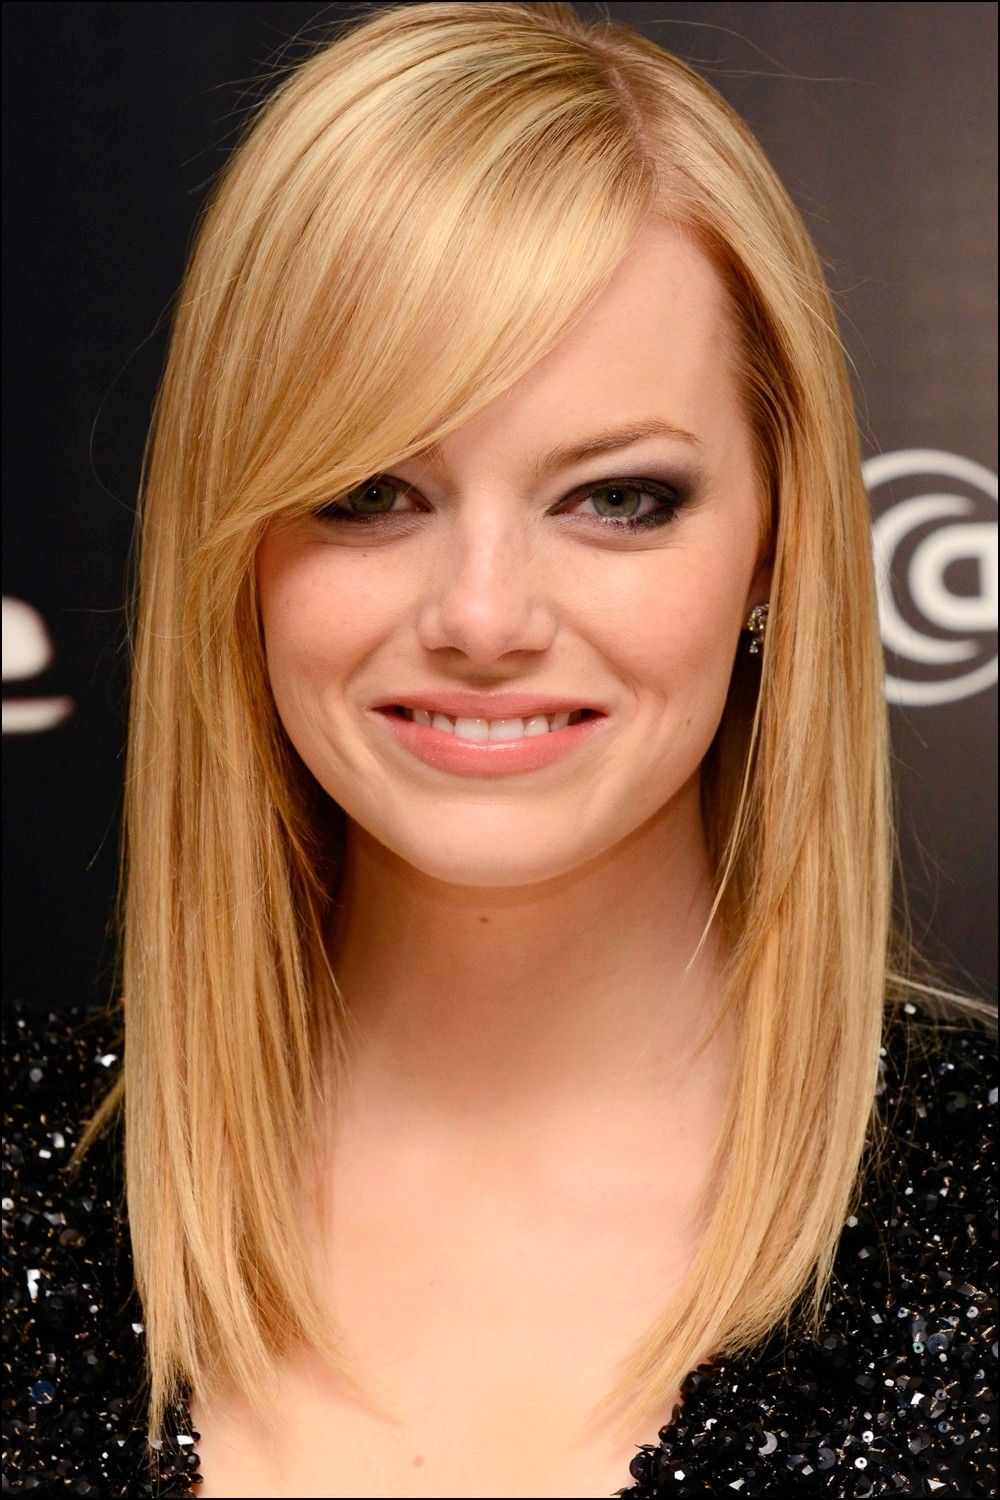 Shoulder Length Haircut With Side Bangs Side Bangs Hairstyles Straight Hairstyles Medium Medium Length Hair Styles